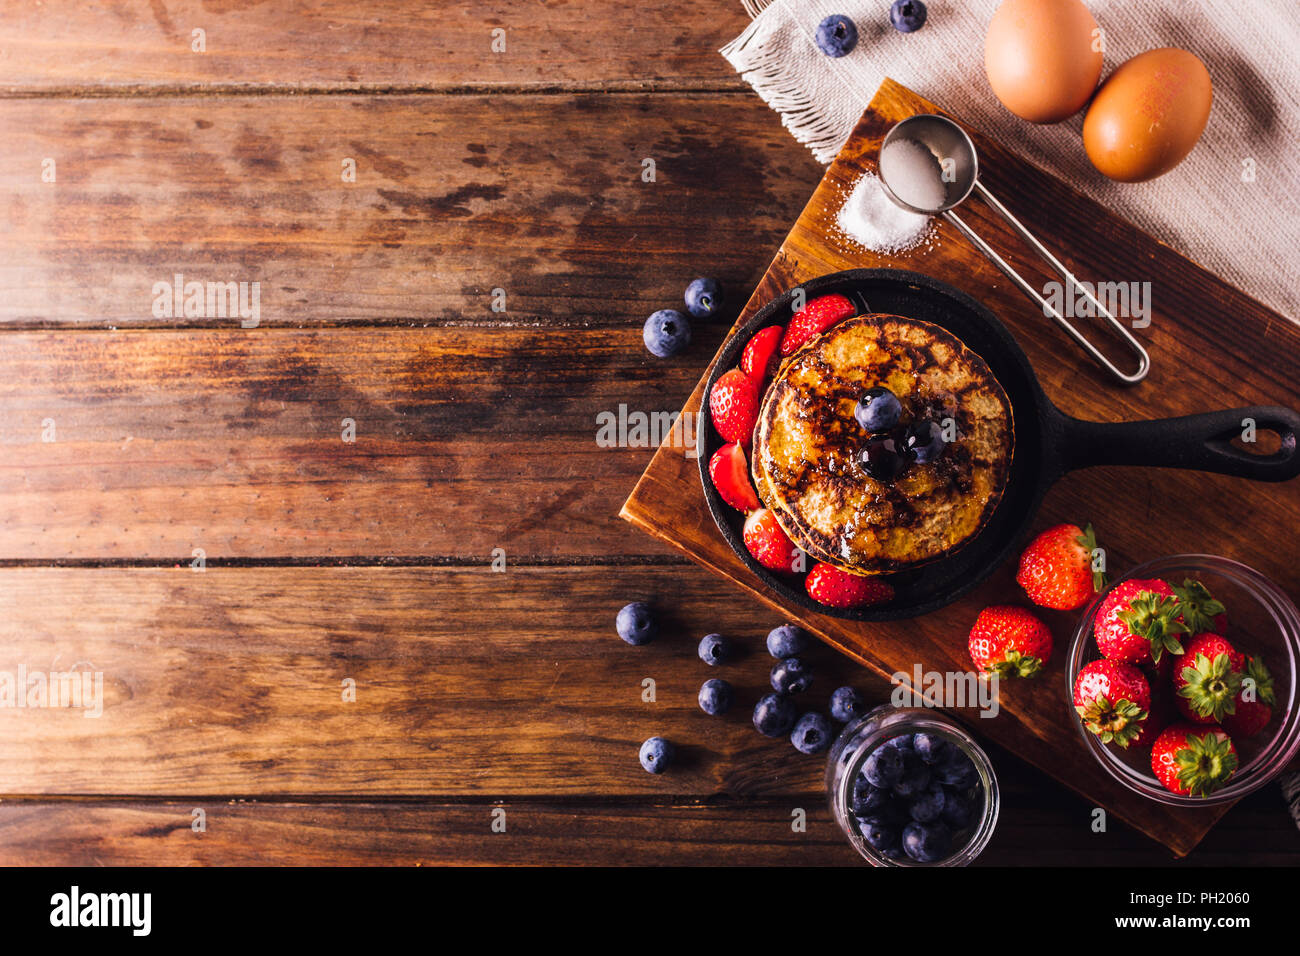 Top View of Delicious breakfast of pancakes served with strawberries and blueberries, On the left side a Copy space to logo or text - Stock Image